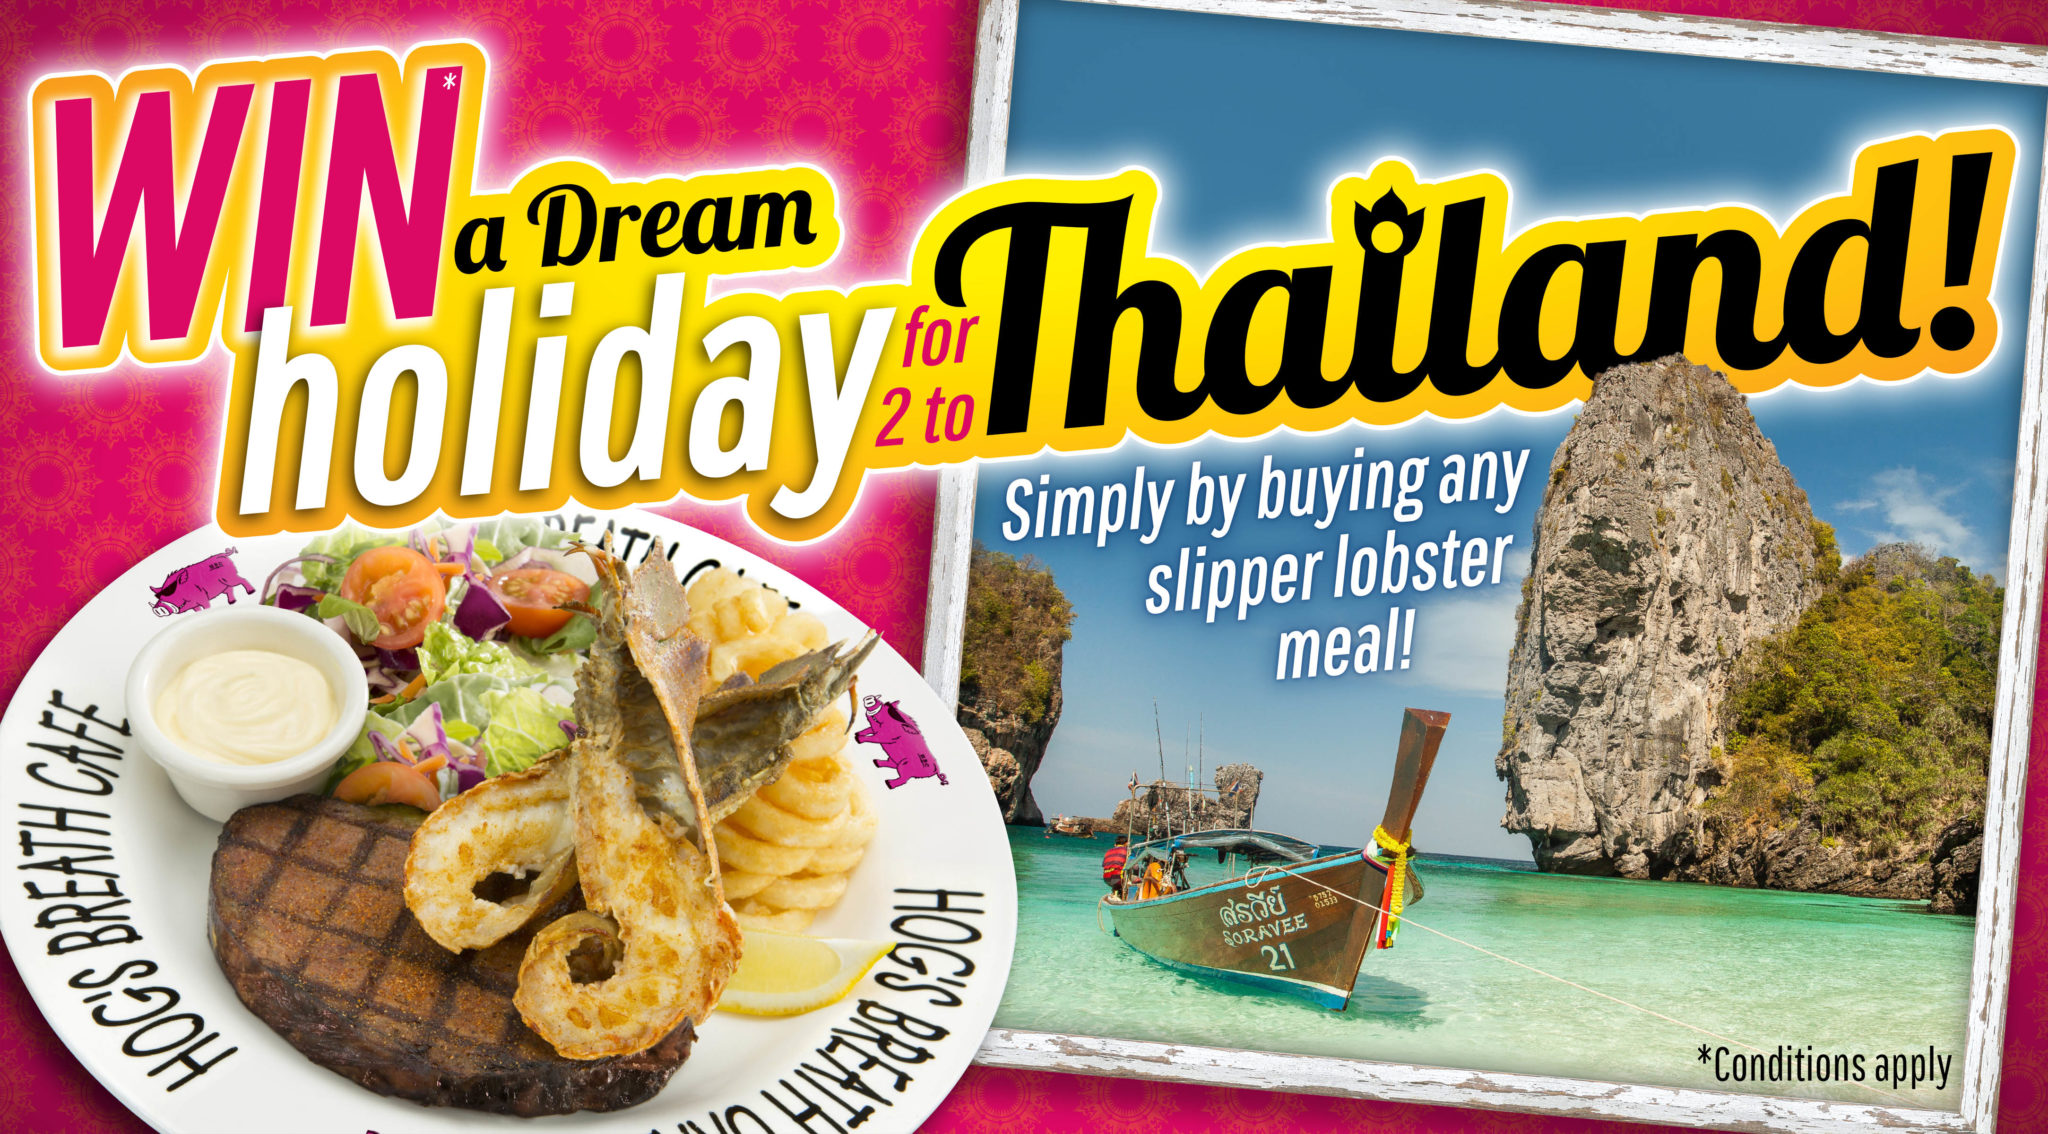 image of thailand beach trip you can win with Hog's Eaton & Hog's Mandurah